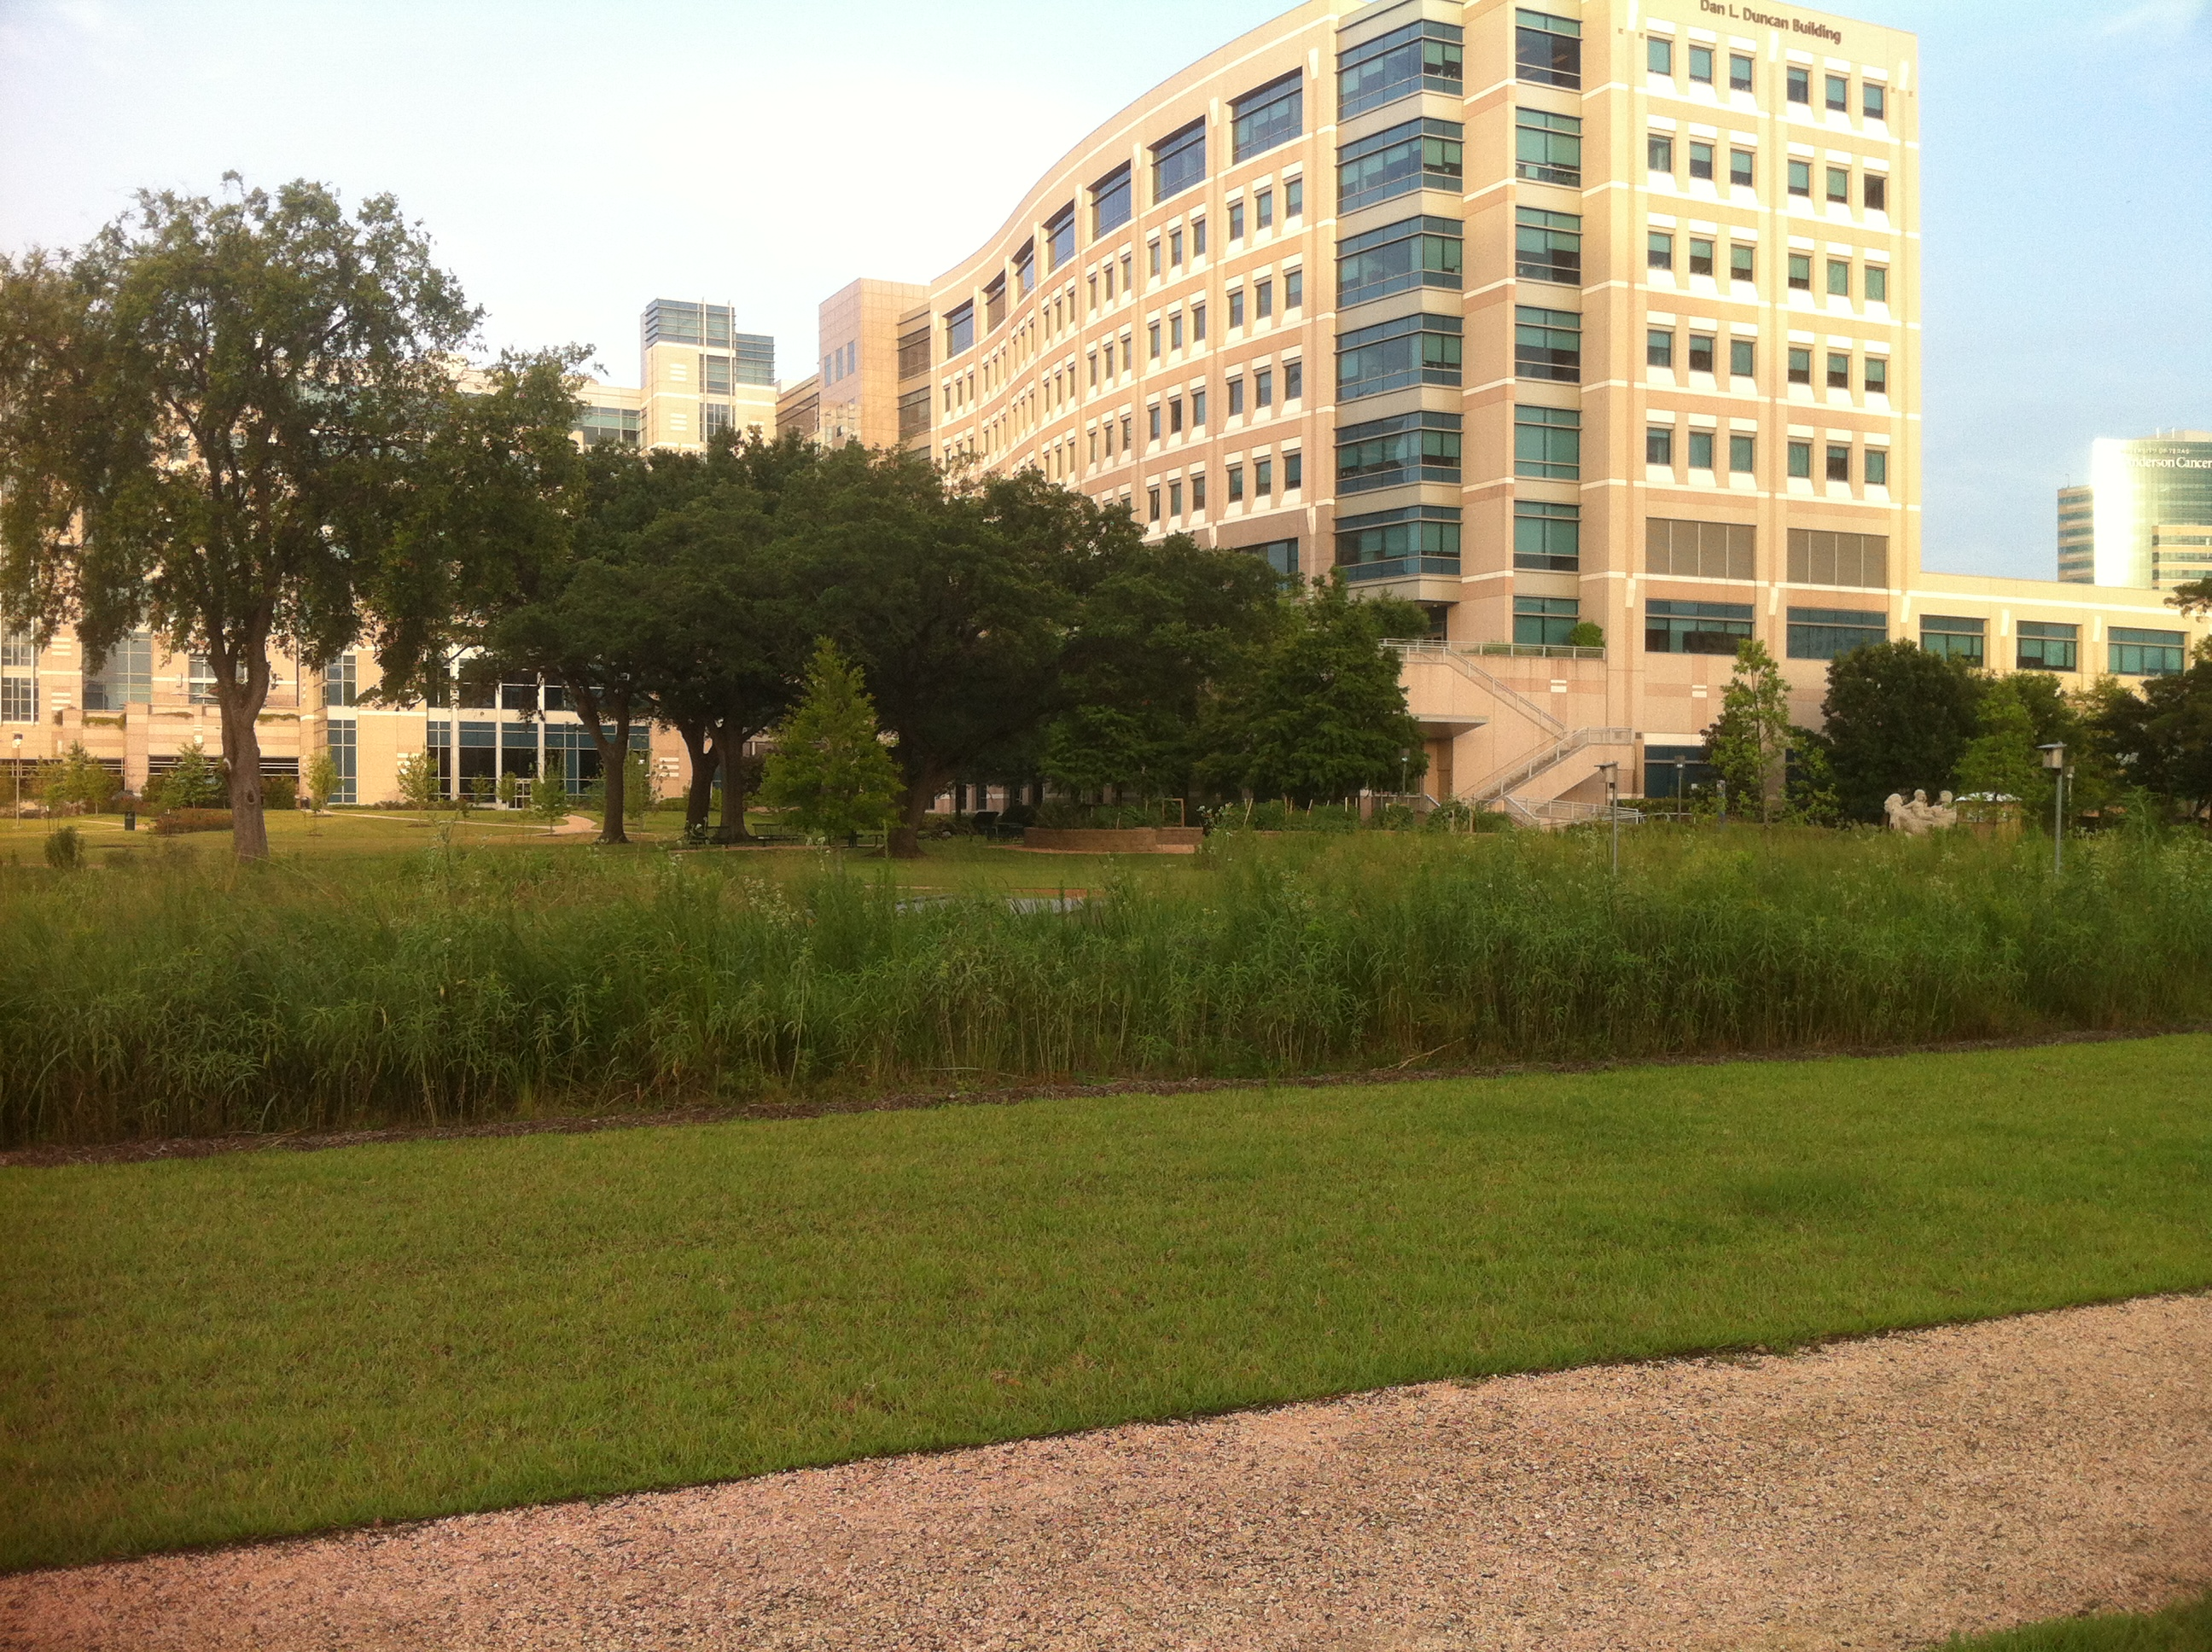 the MD Anderson-Mays Center and Steve n\' Jake pocket prairies ...